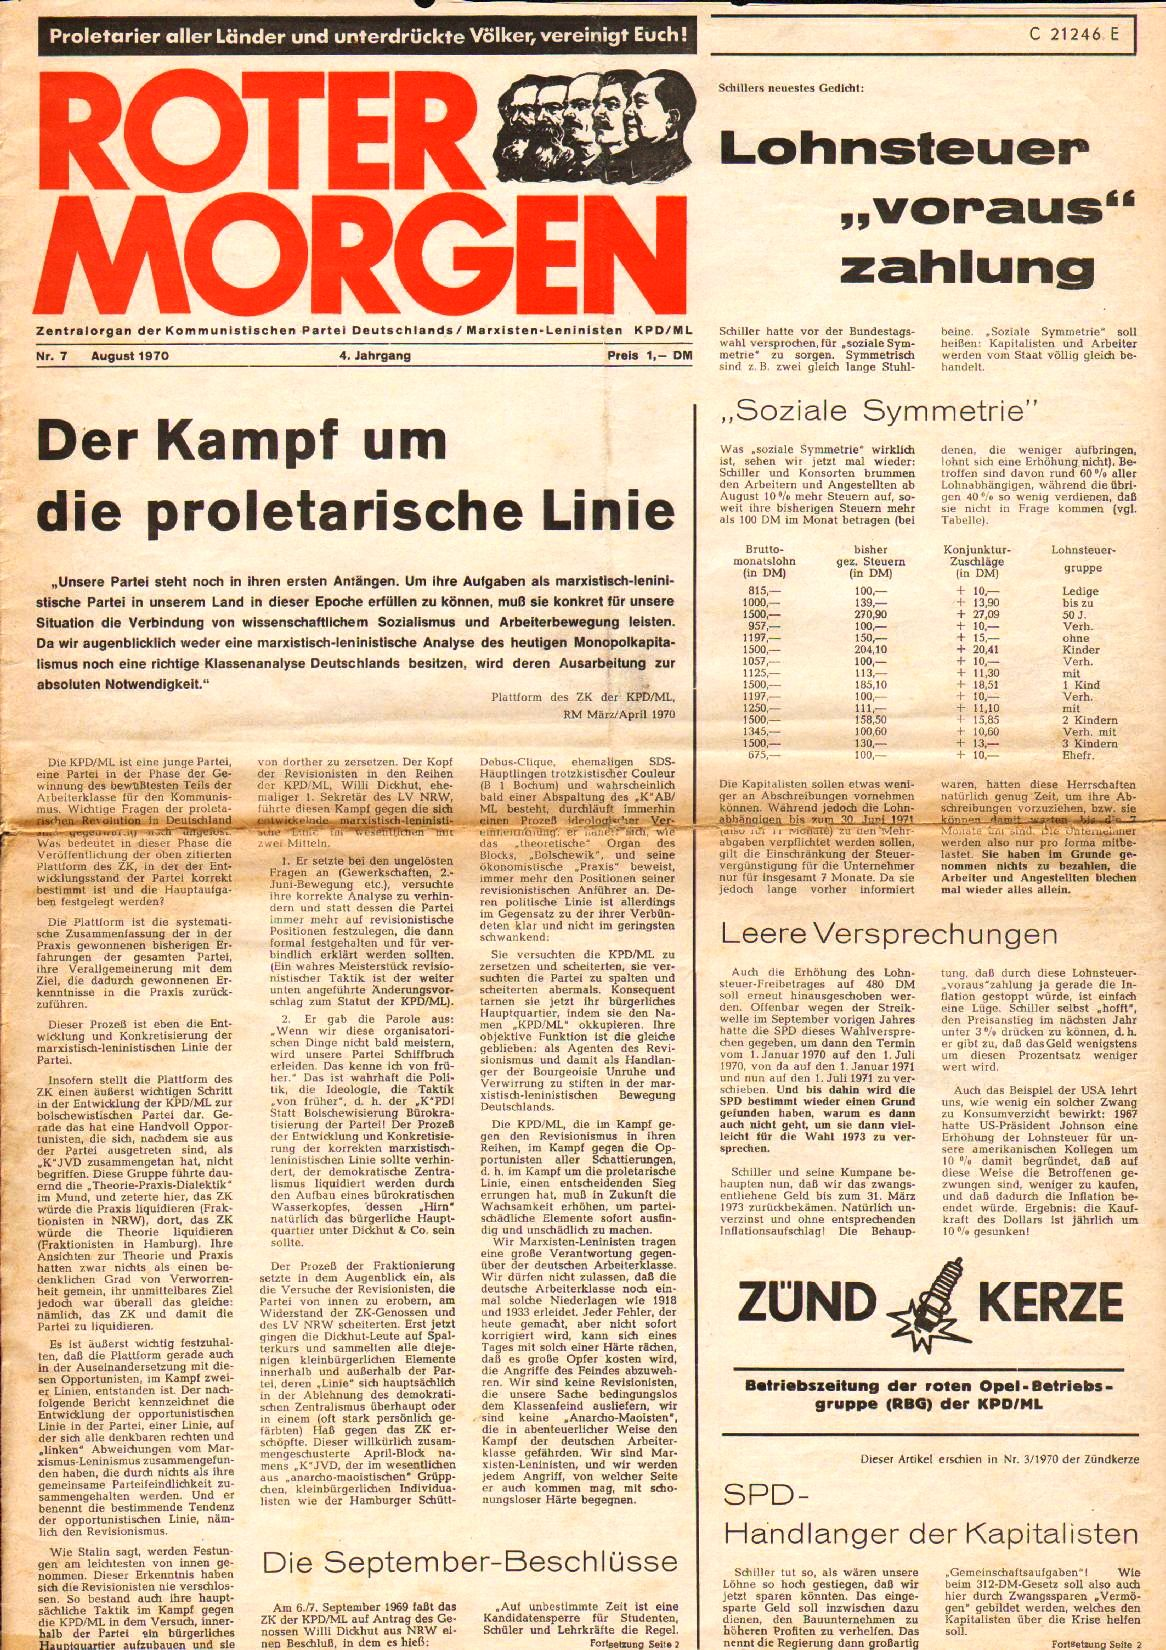 Roter Morgen, 4. Jg., August 1970, Nr. 7, Seite 1